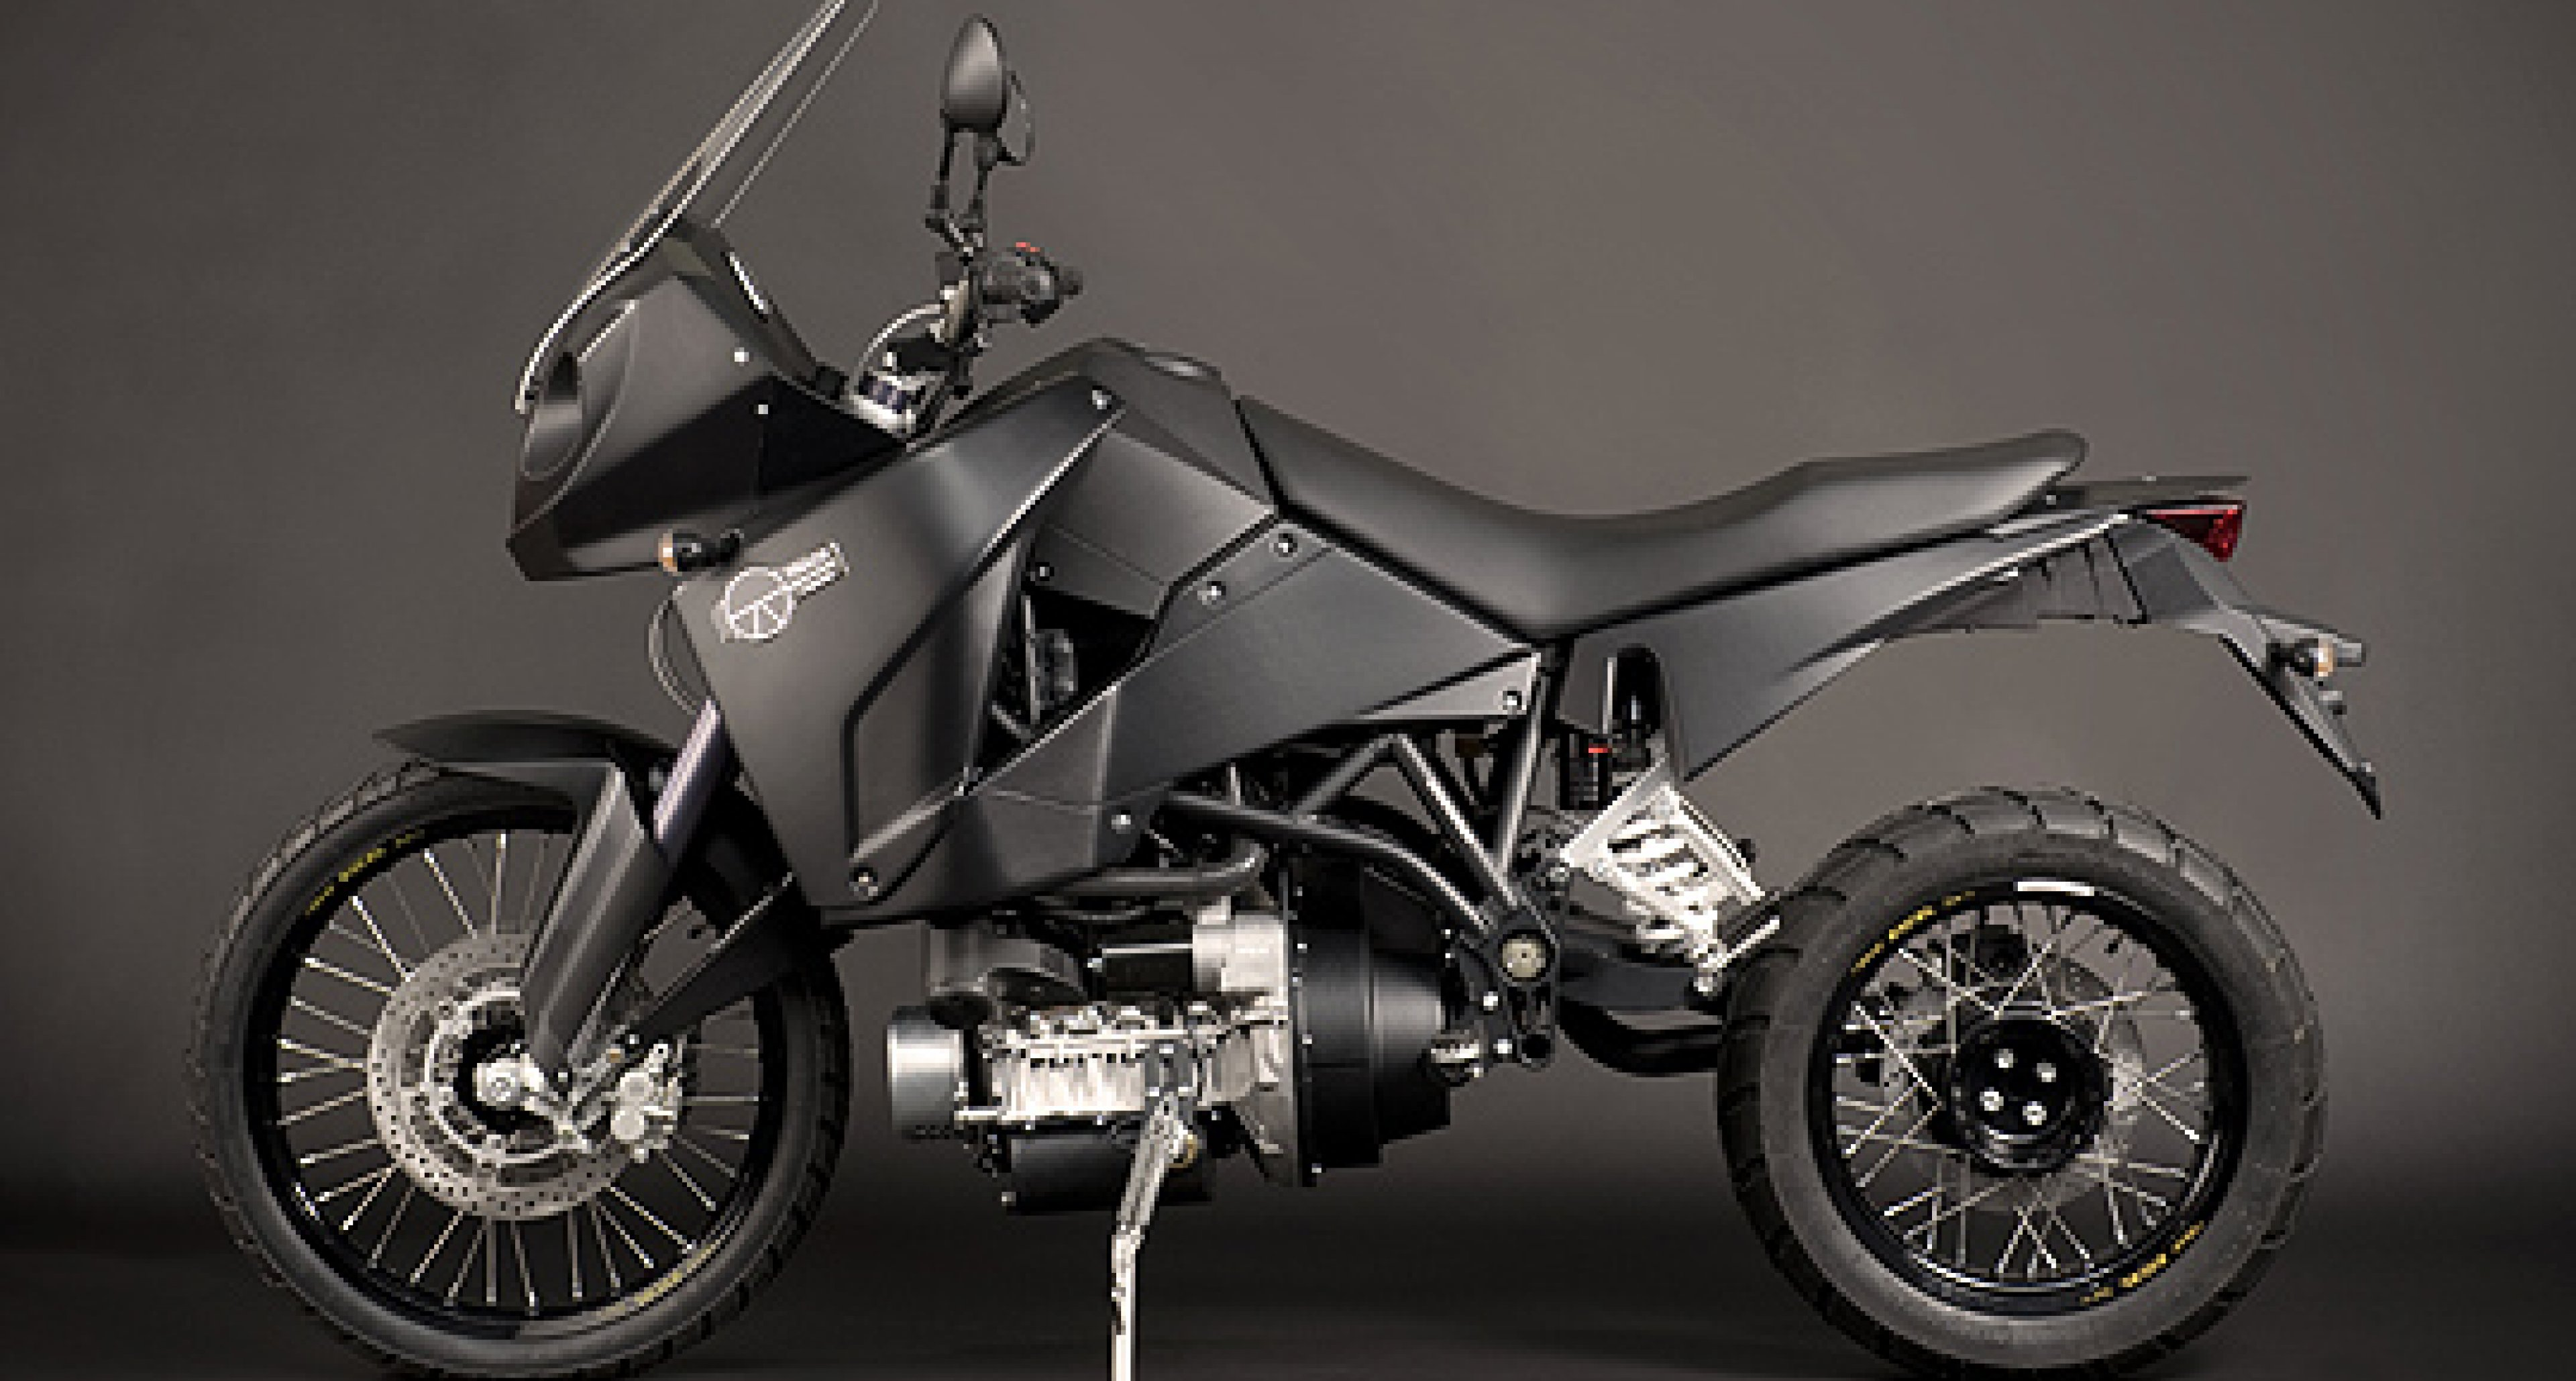 Evaproducts Track T-800CDI Diesel - Two Wheels, More Miles